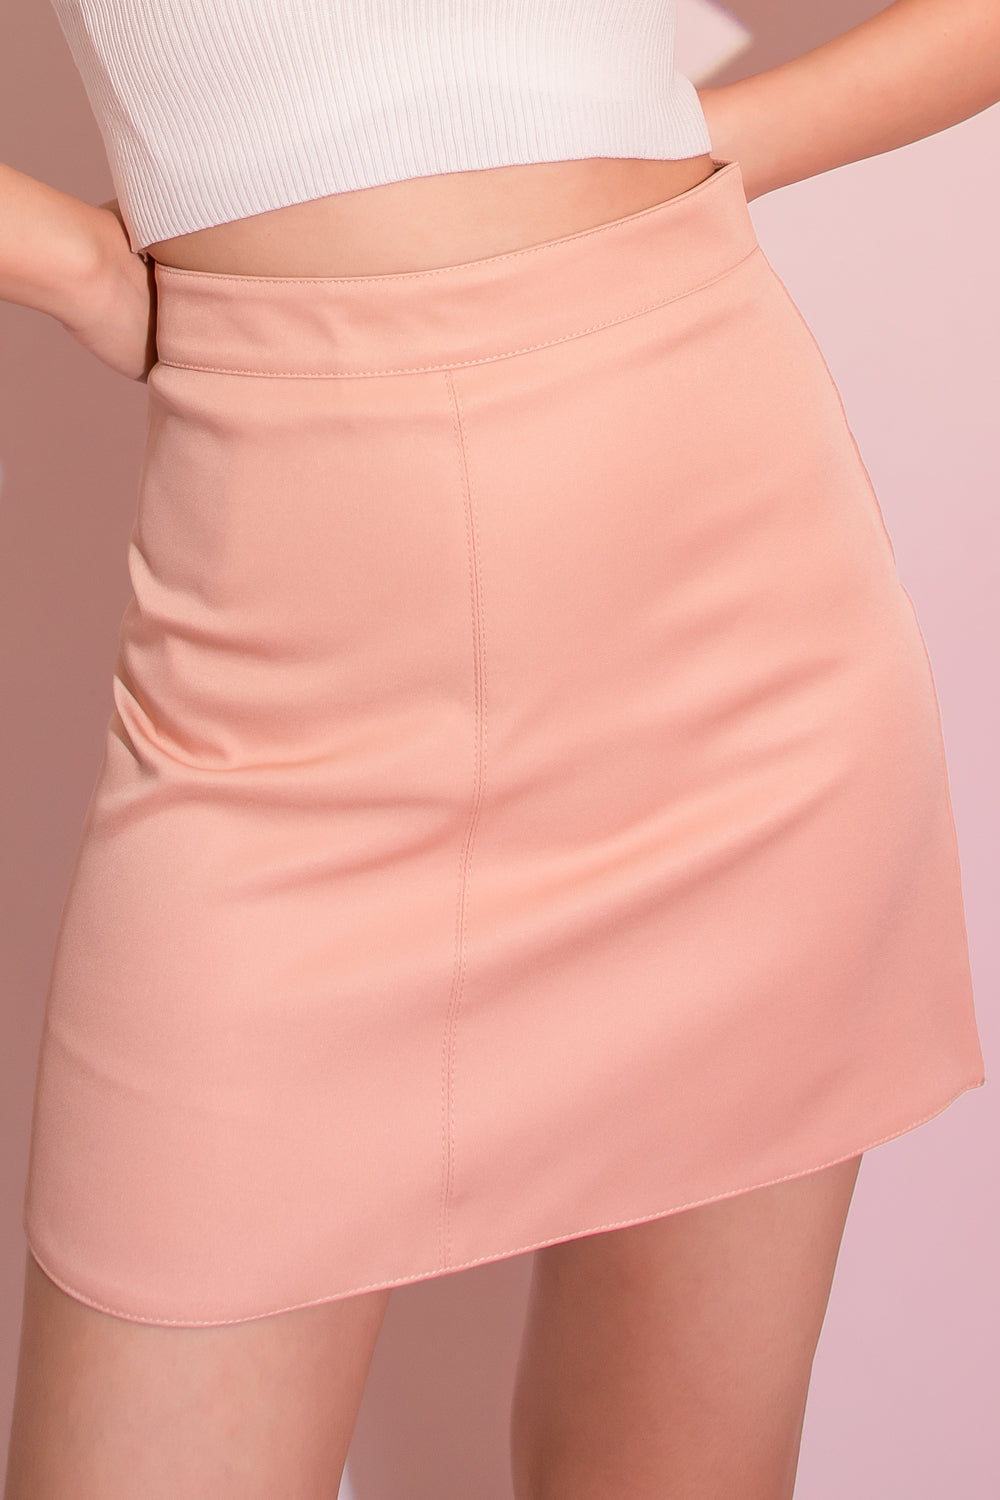 Shannon A-Line Skorts in Pink - Three One Duo